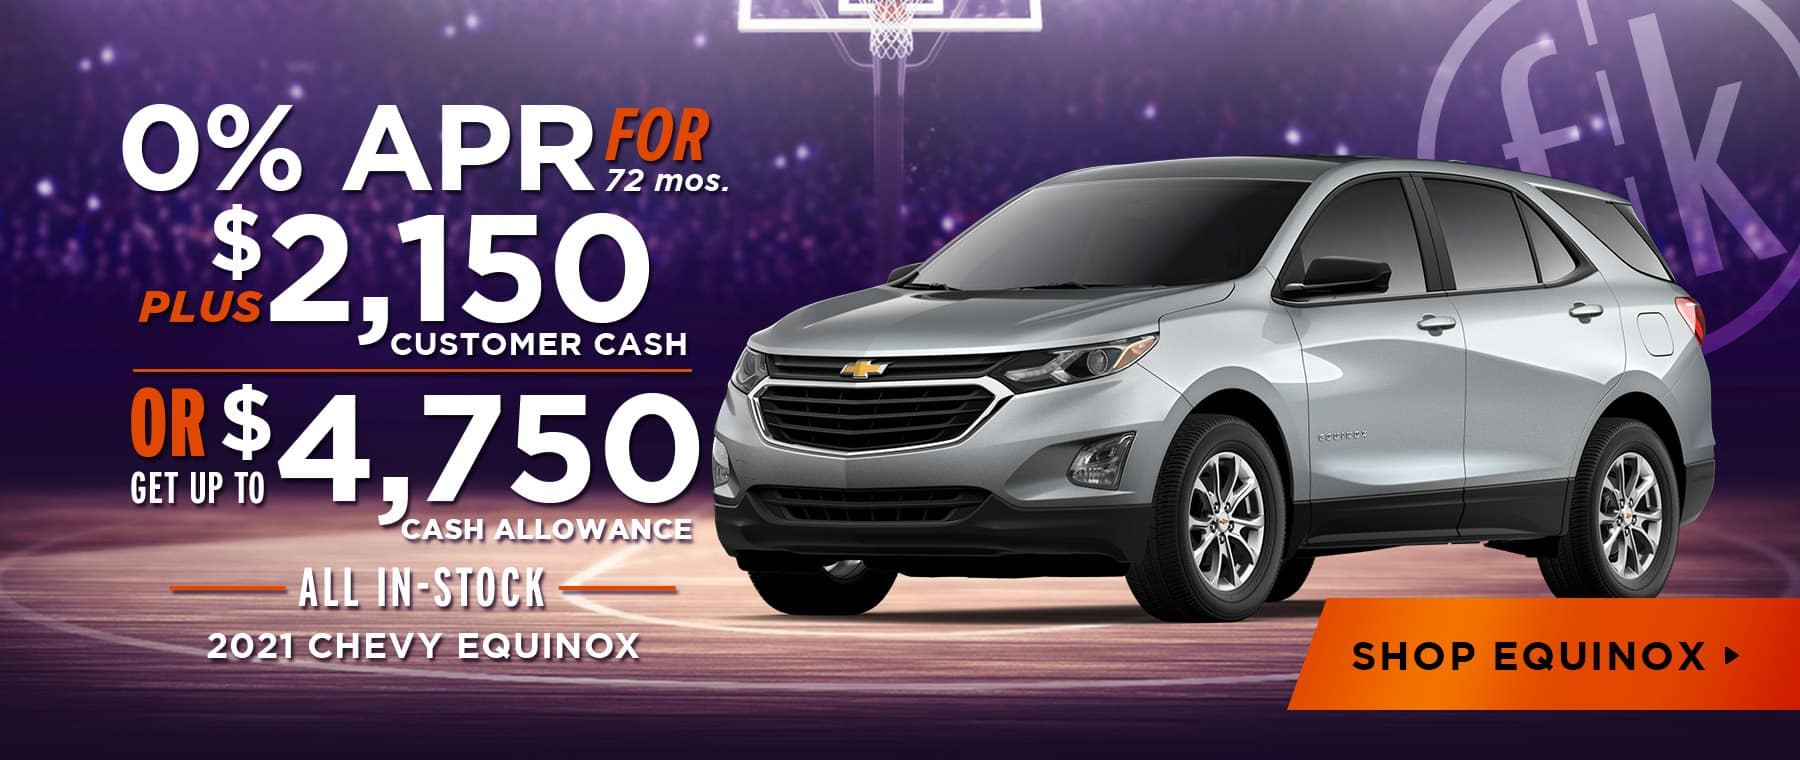 2021 Equinox 0% for 72 mos + $2,150 Customer Cash OR Up To $4,750 Cash Allowance